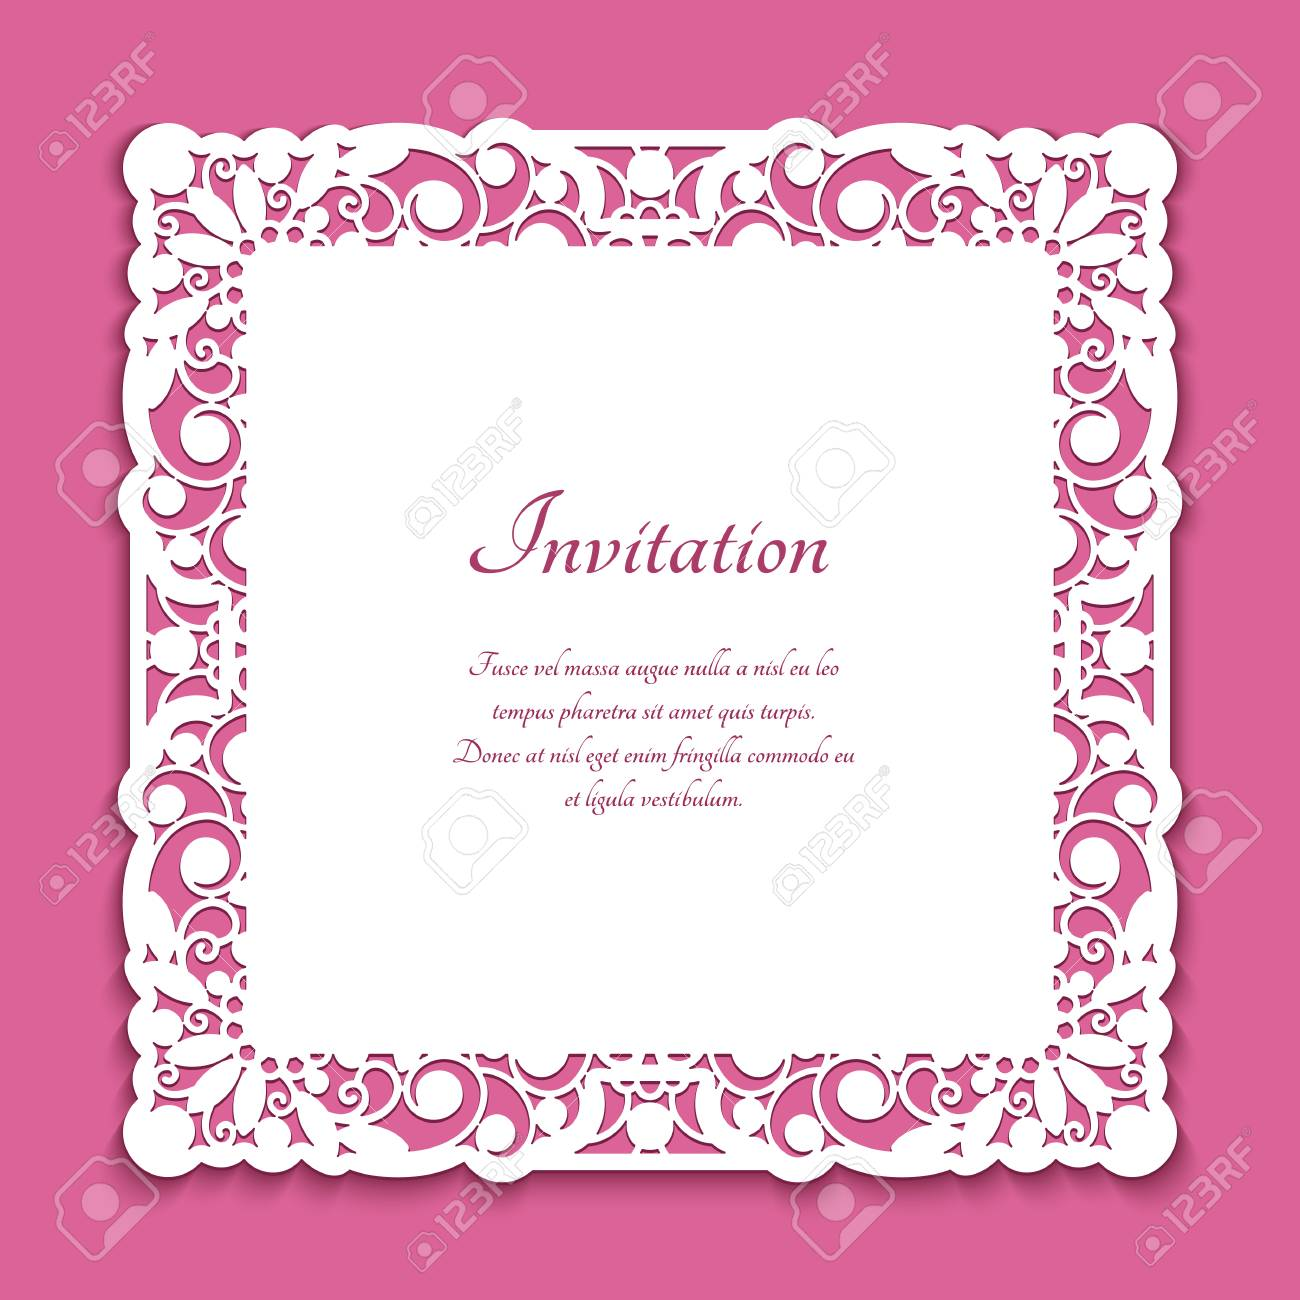 Ornamental square frame with lace border pattern, cutout wedding invitation design, template for laser cutting - 126067670